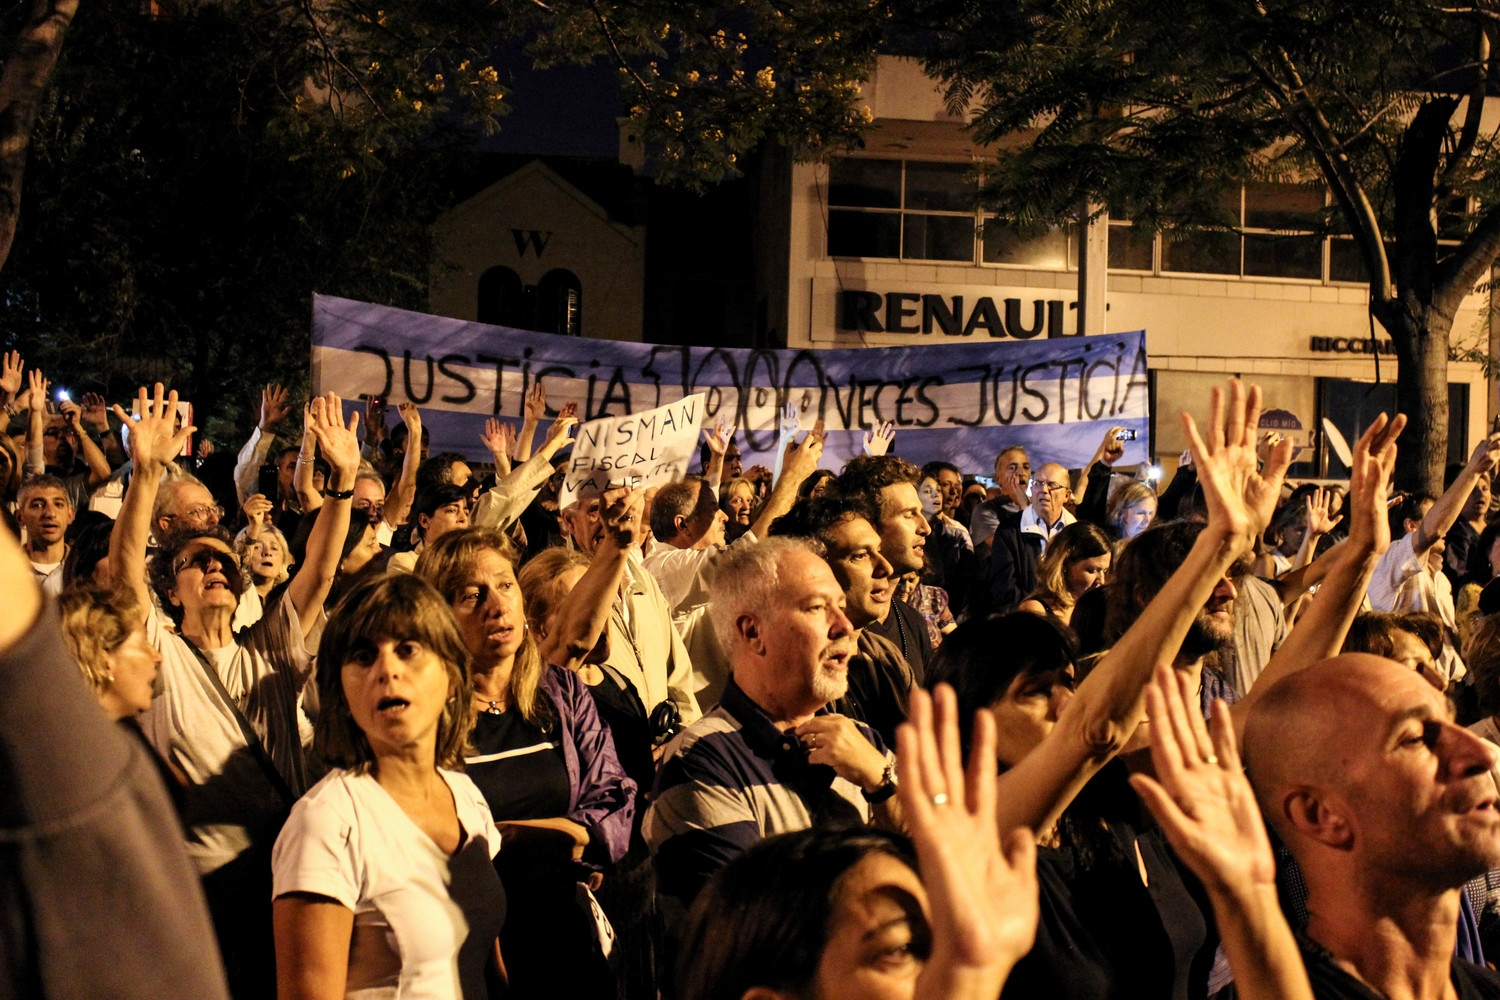 A protest being held after the suspicious death of Albert Nisman. Source: Flickr/jmalievi